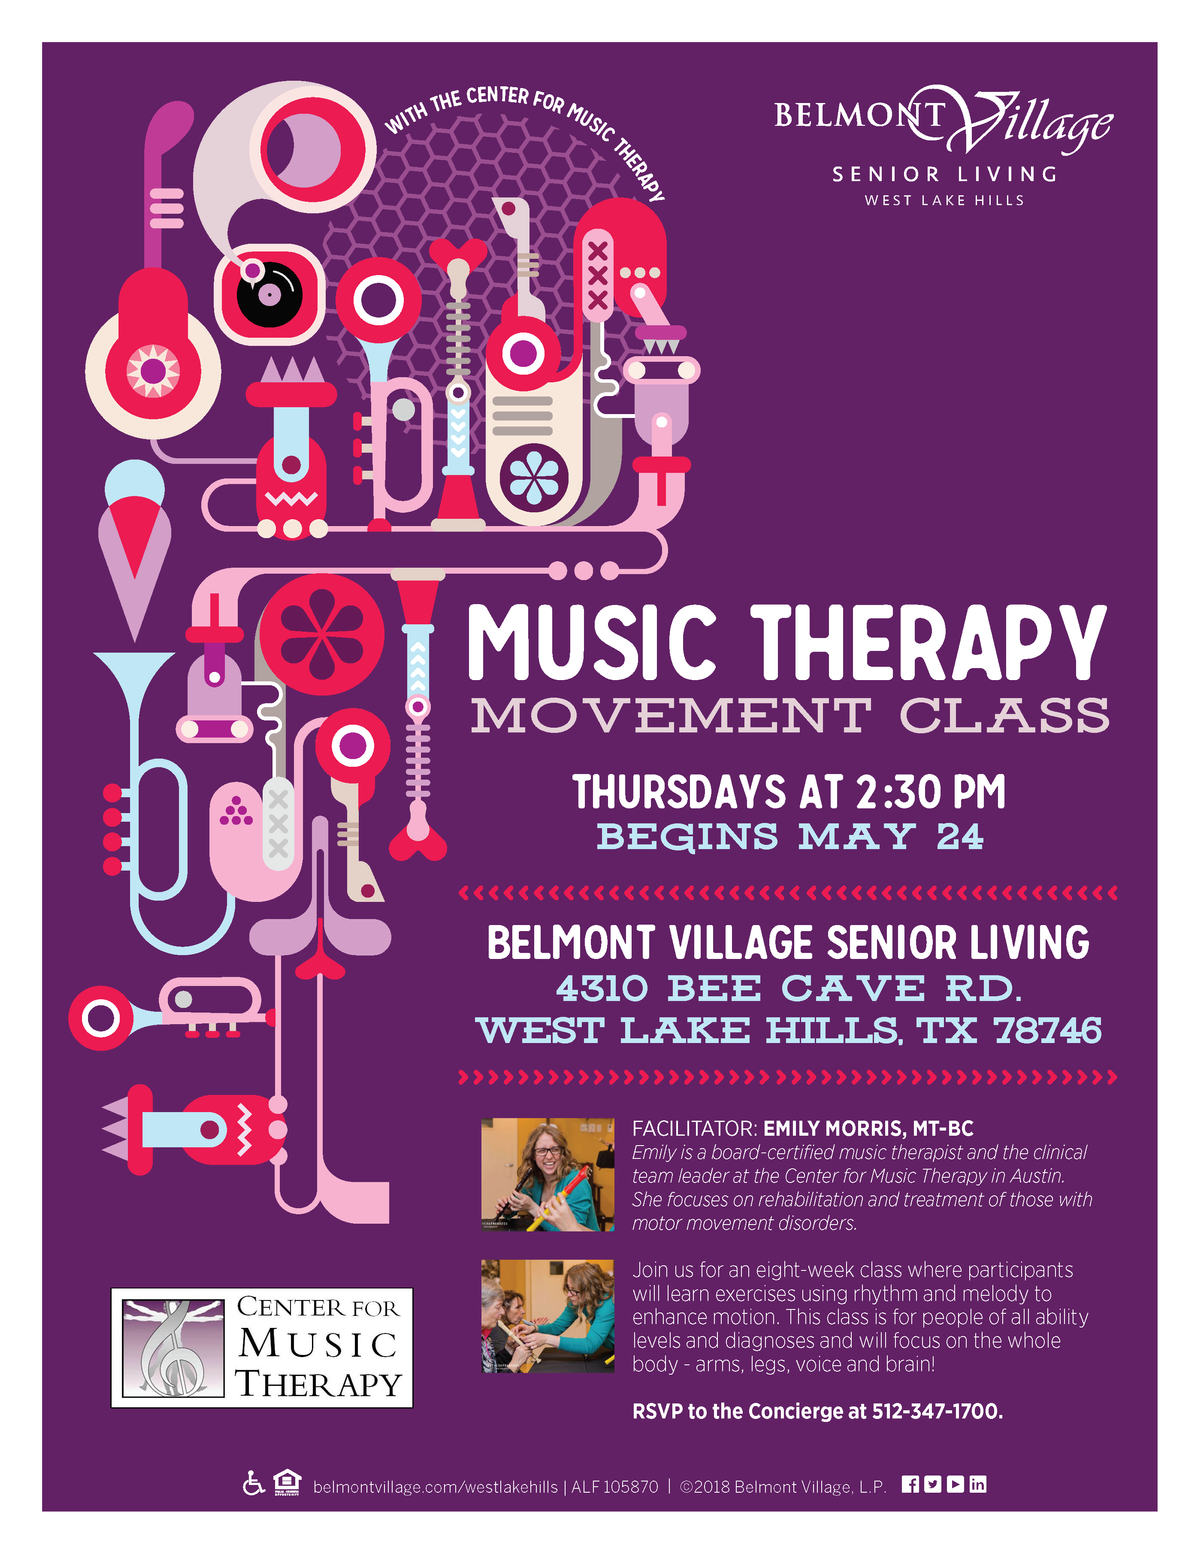 WLH_MusicTherapy_Flyer_5_2018_Page_1.png